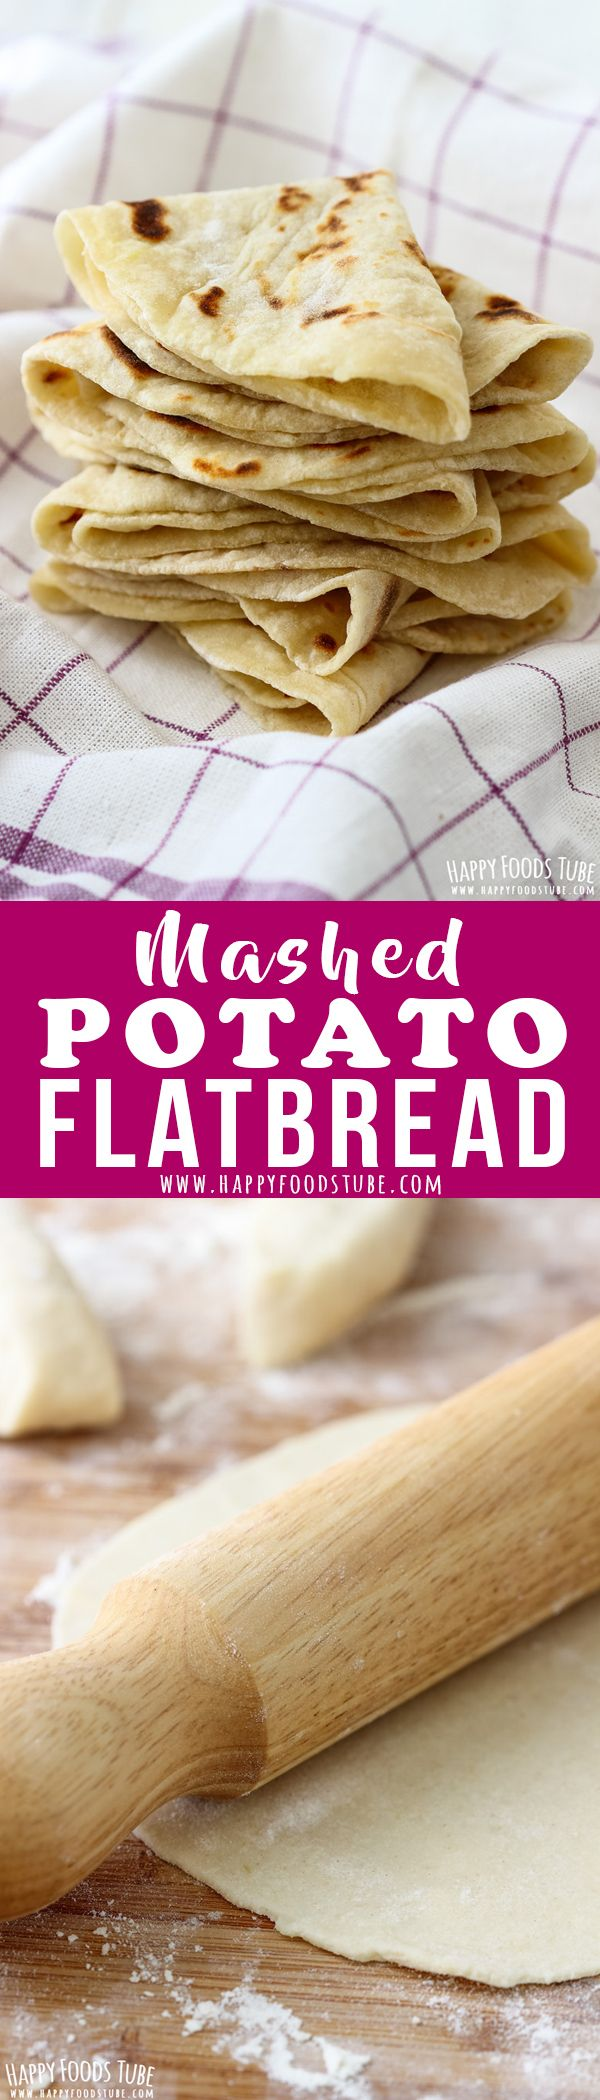 Simple Mashed Potato Flatbread Recipe. Having leftover mashed potatoes? Turn them into this easy mashed potato flatbread! It's a yeast-free & oil-free side dish that everyone loves!